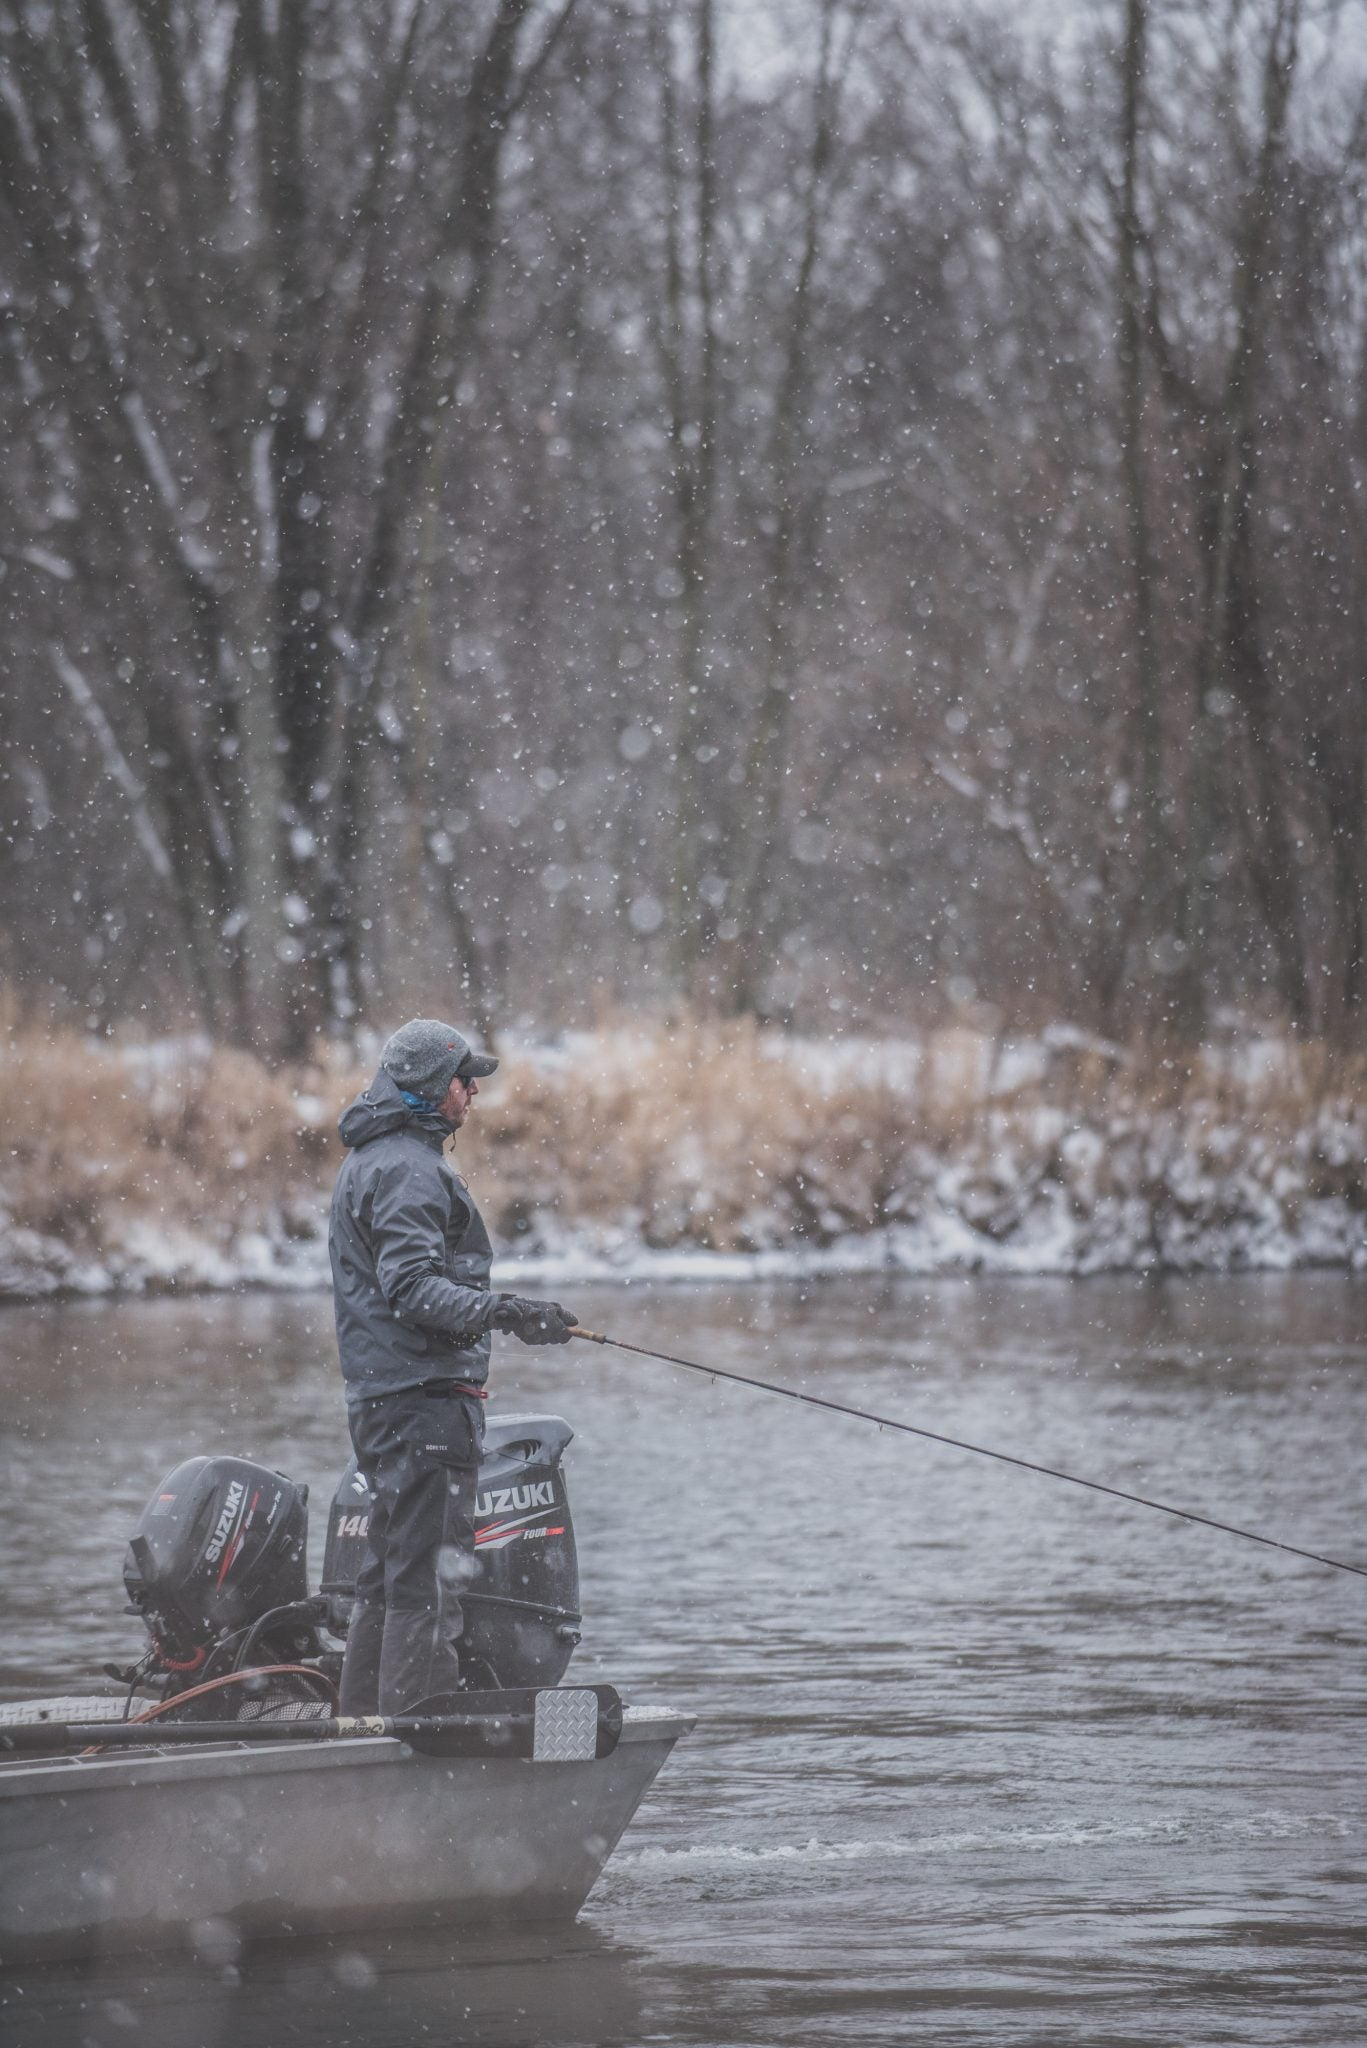 Michigan Resident, Scott Wellard, battles a fresh snowfall while swinging flies for Steelhead on the Muskegon River in Michigan. Wellard, and friend Sean Anderson spent the day with Fishing Guide, Brandyn Thorsen of Great Lakes Guide Services, searching out some hungry Steelhead.